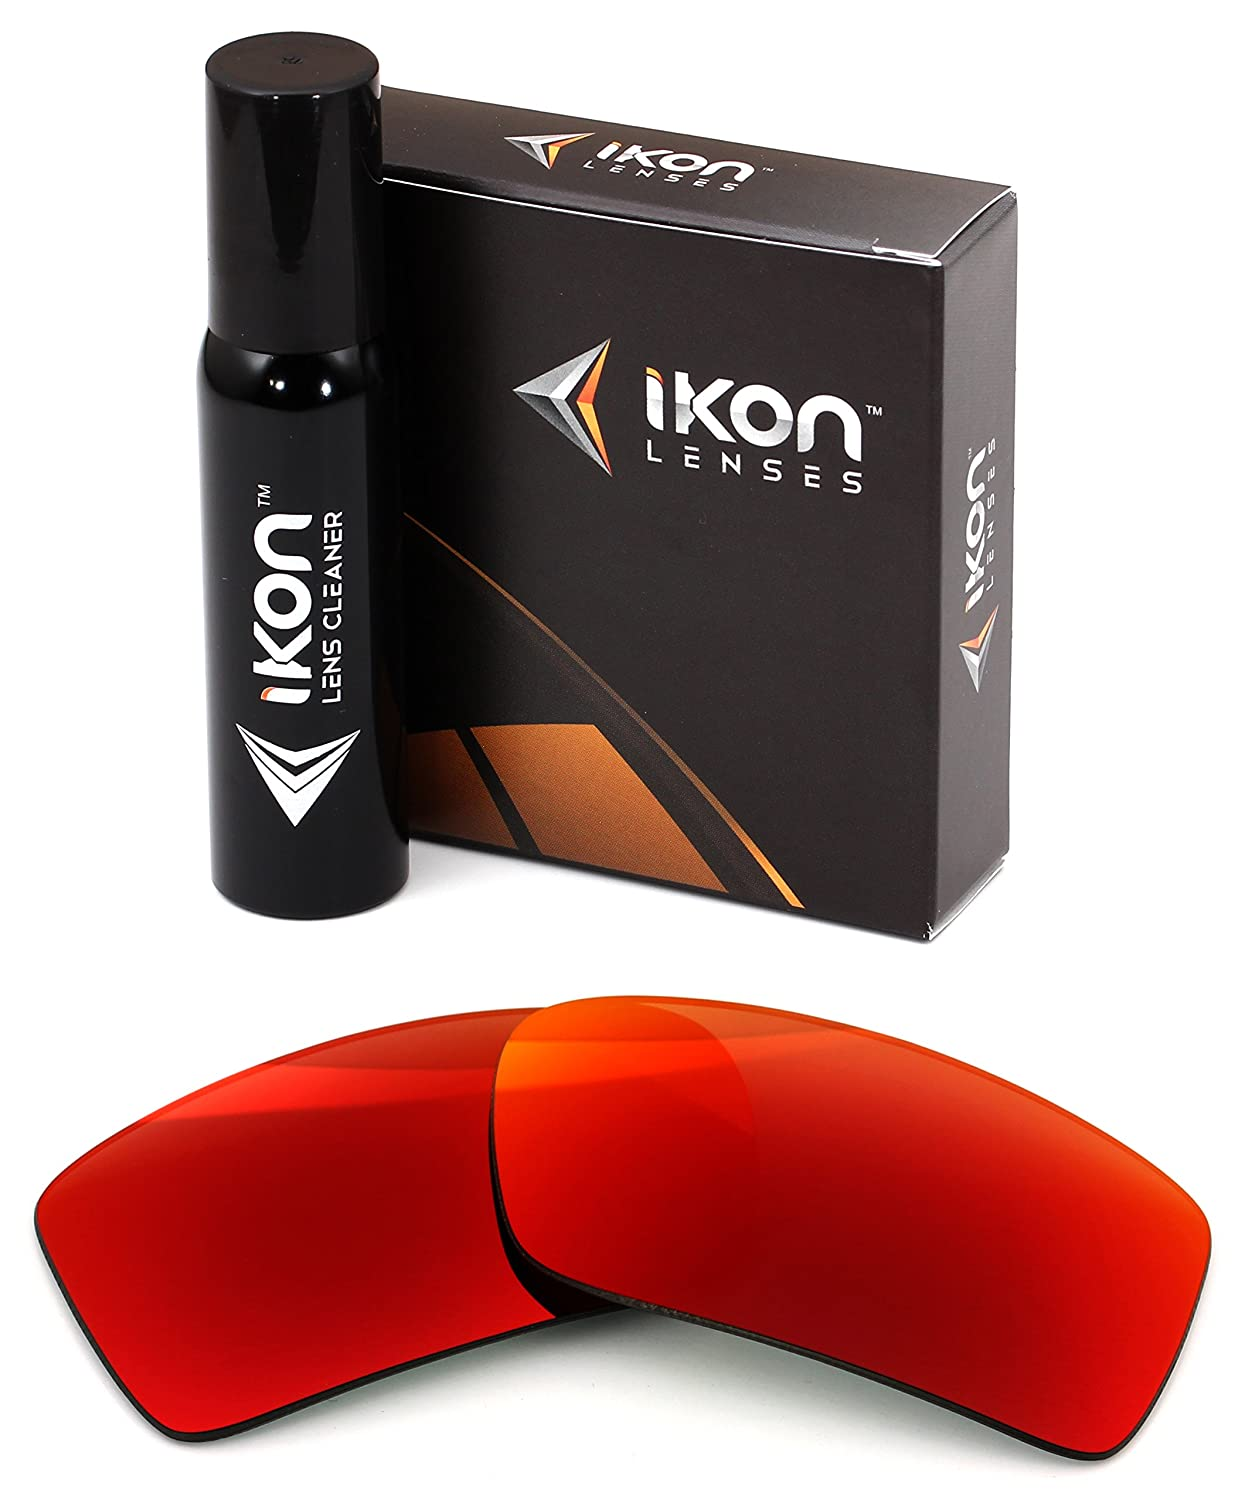 Ikon Lenses Polarized IKON Replacement Lenses for Von Zipper Snark Sunglasses - Black Snark-Black